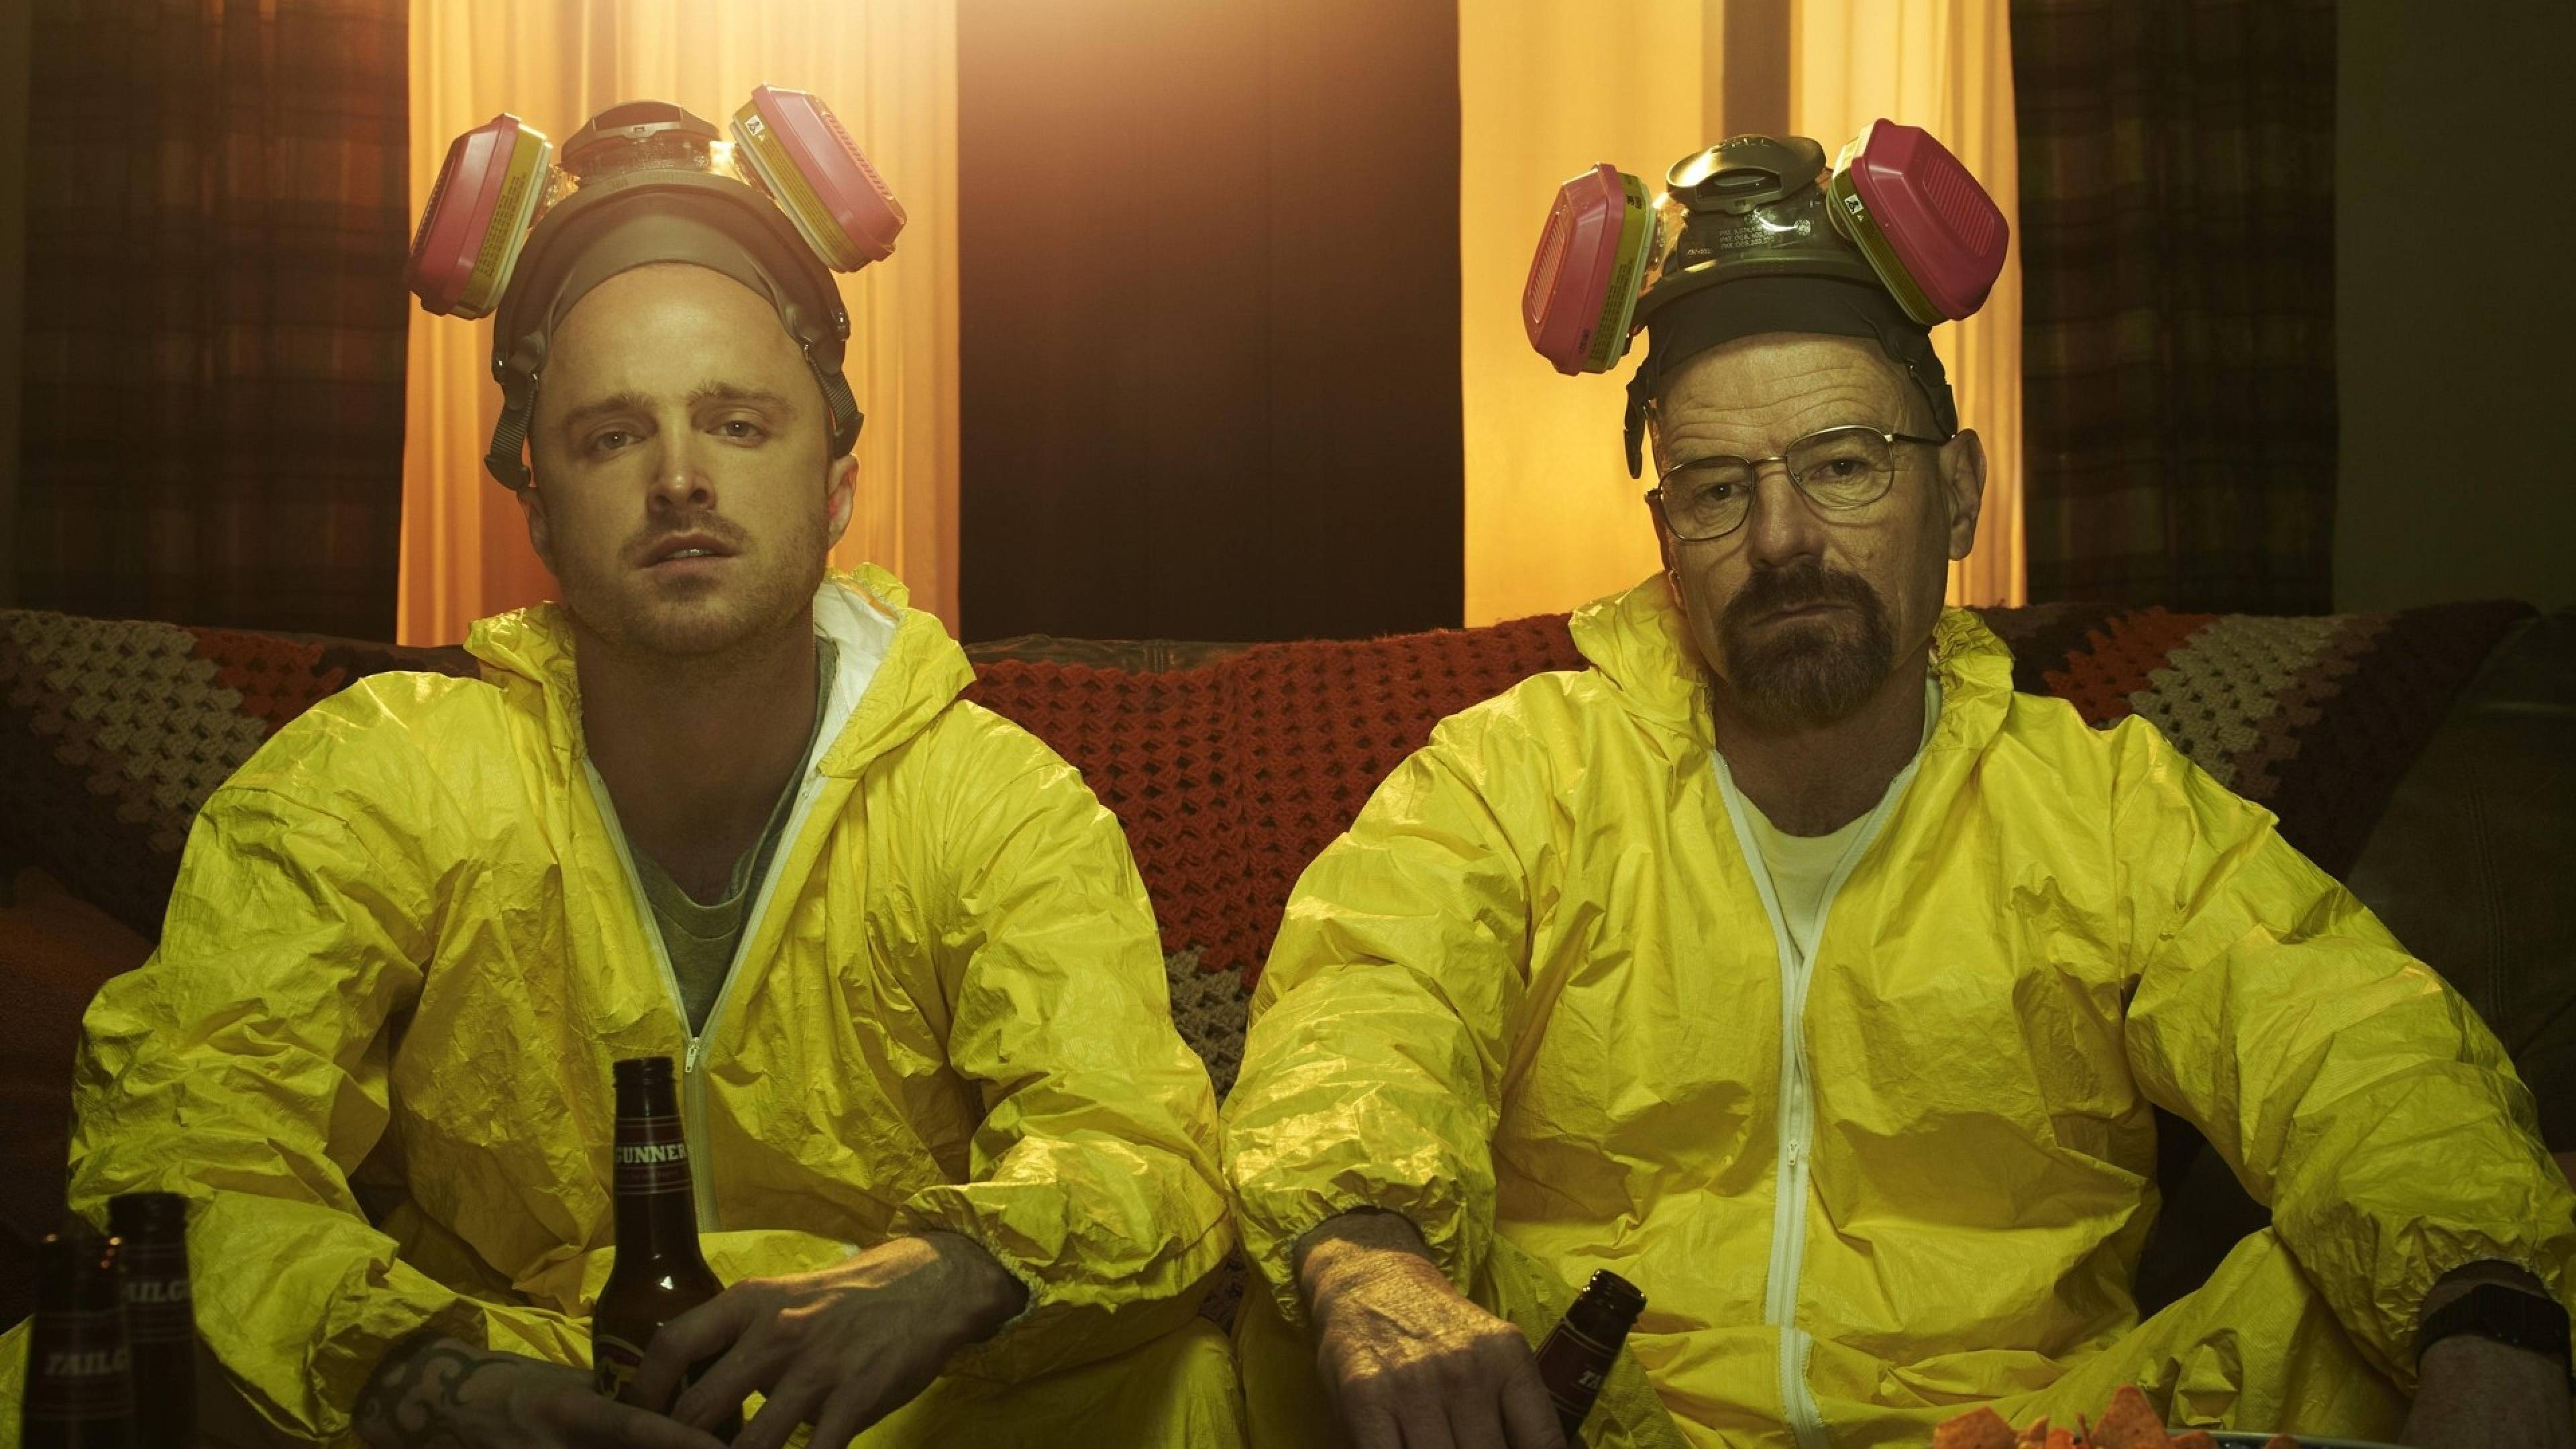 Download Wallpapers 3840x2160 breaking bad, walter white, jesse